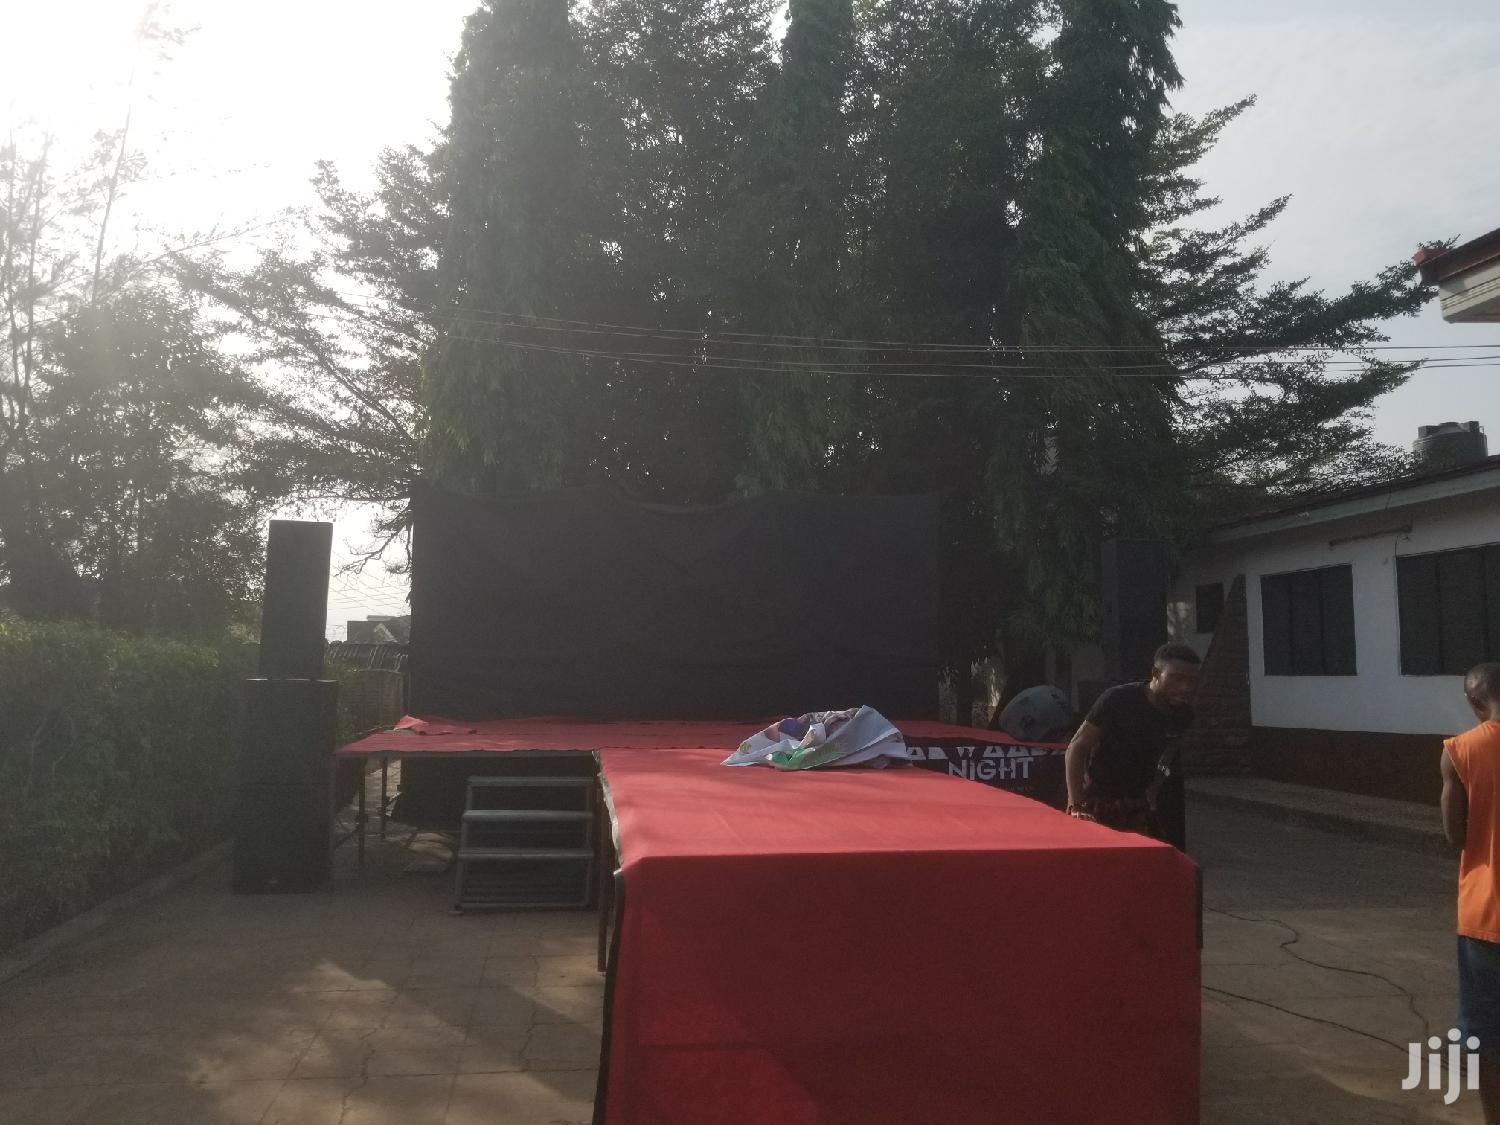 Stage For Rent Opposite West Hills Mall | Party, Catering & Event Services for sale in Accra Metropolitan, Greater Accra, Ghana